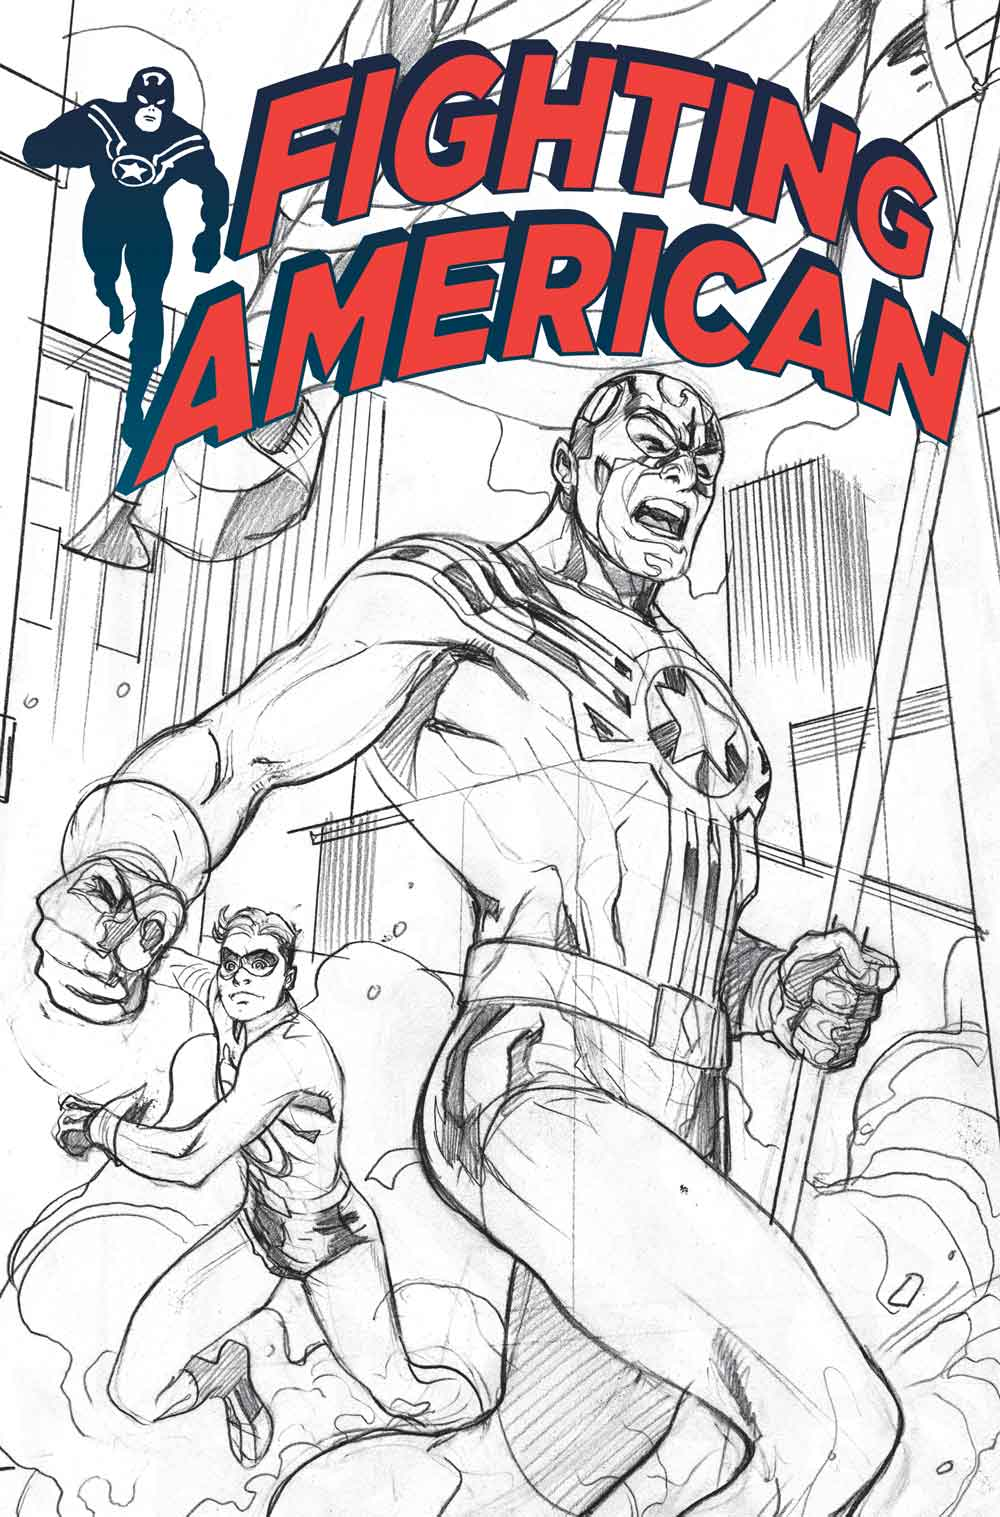 Fighting American #9 - Cover by Terry Dodson